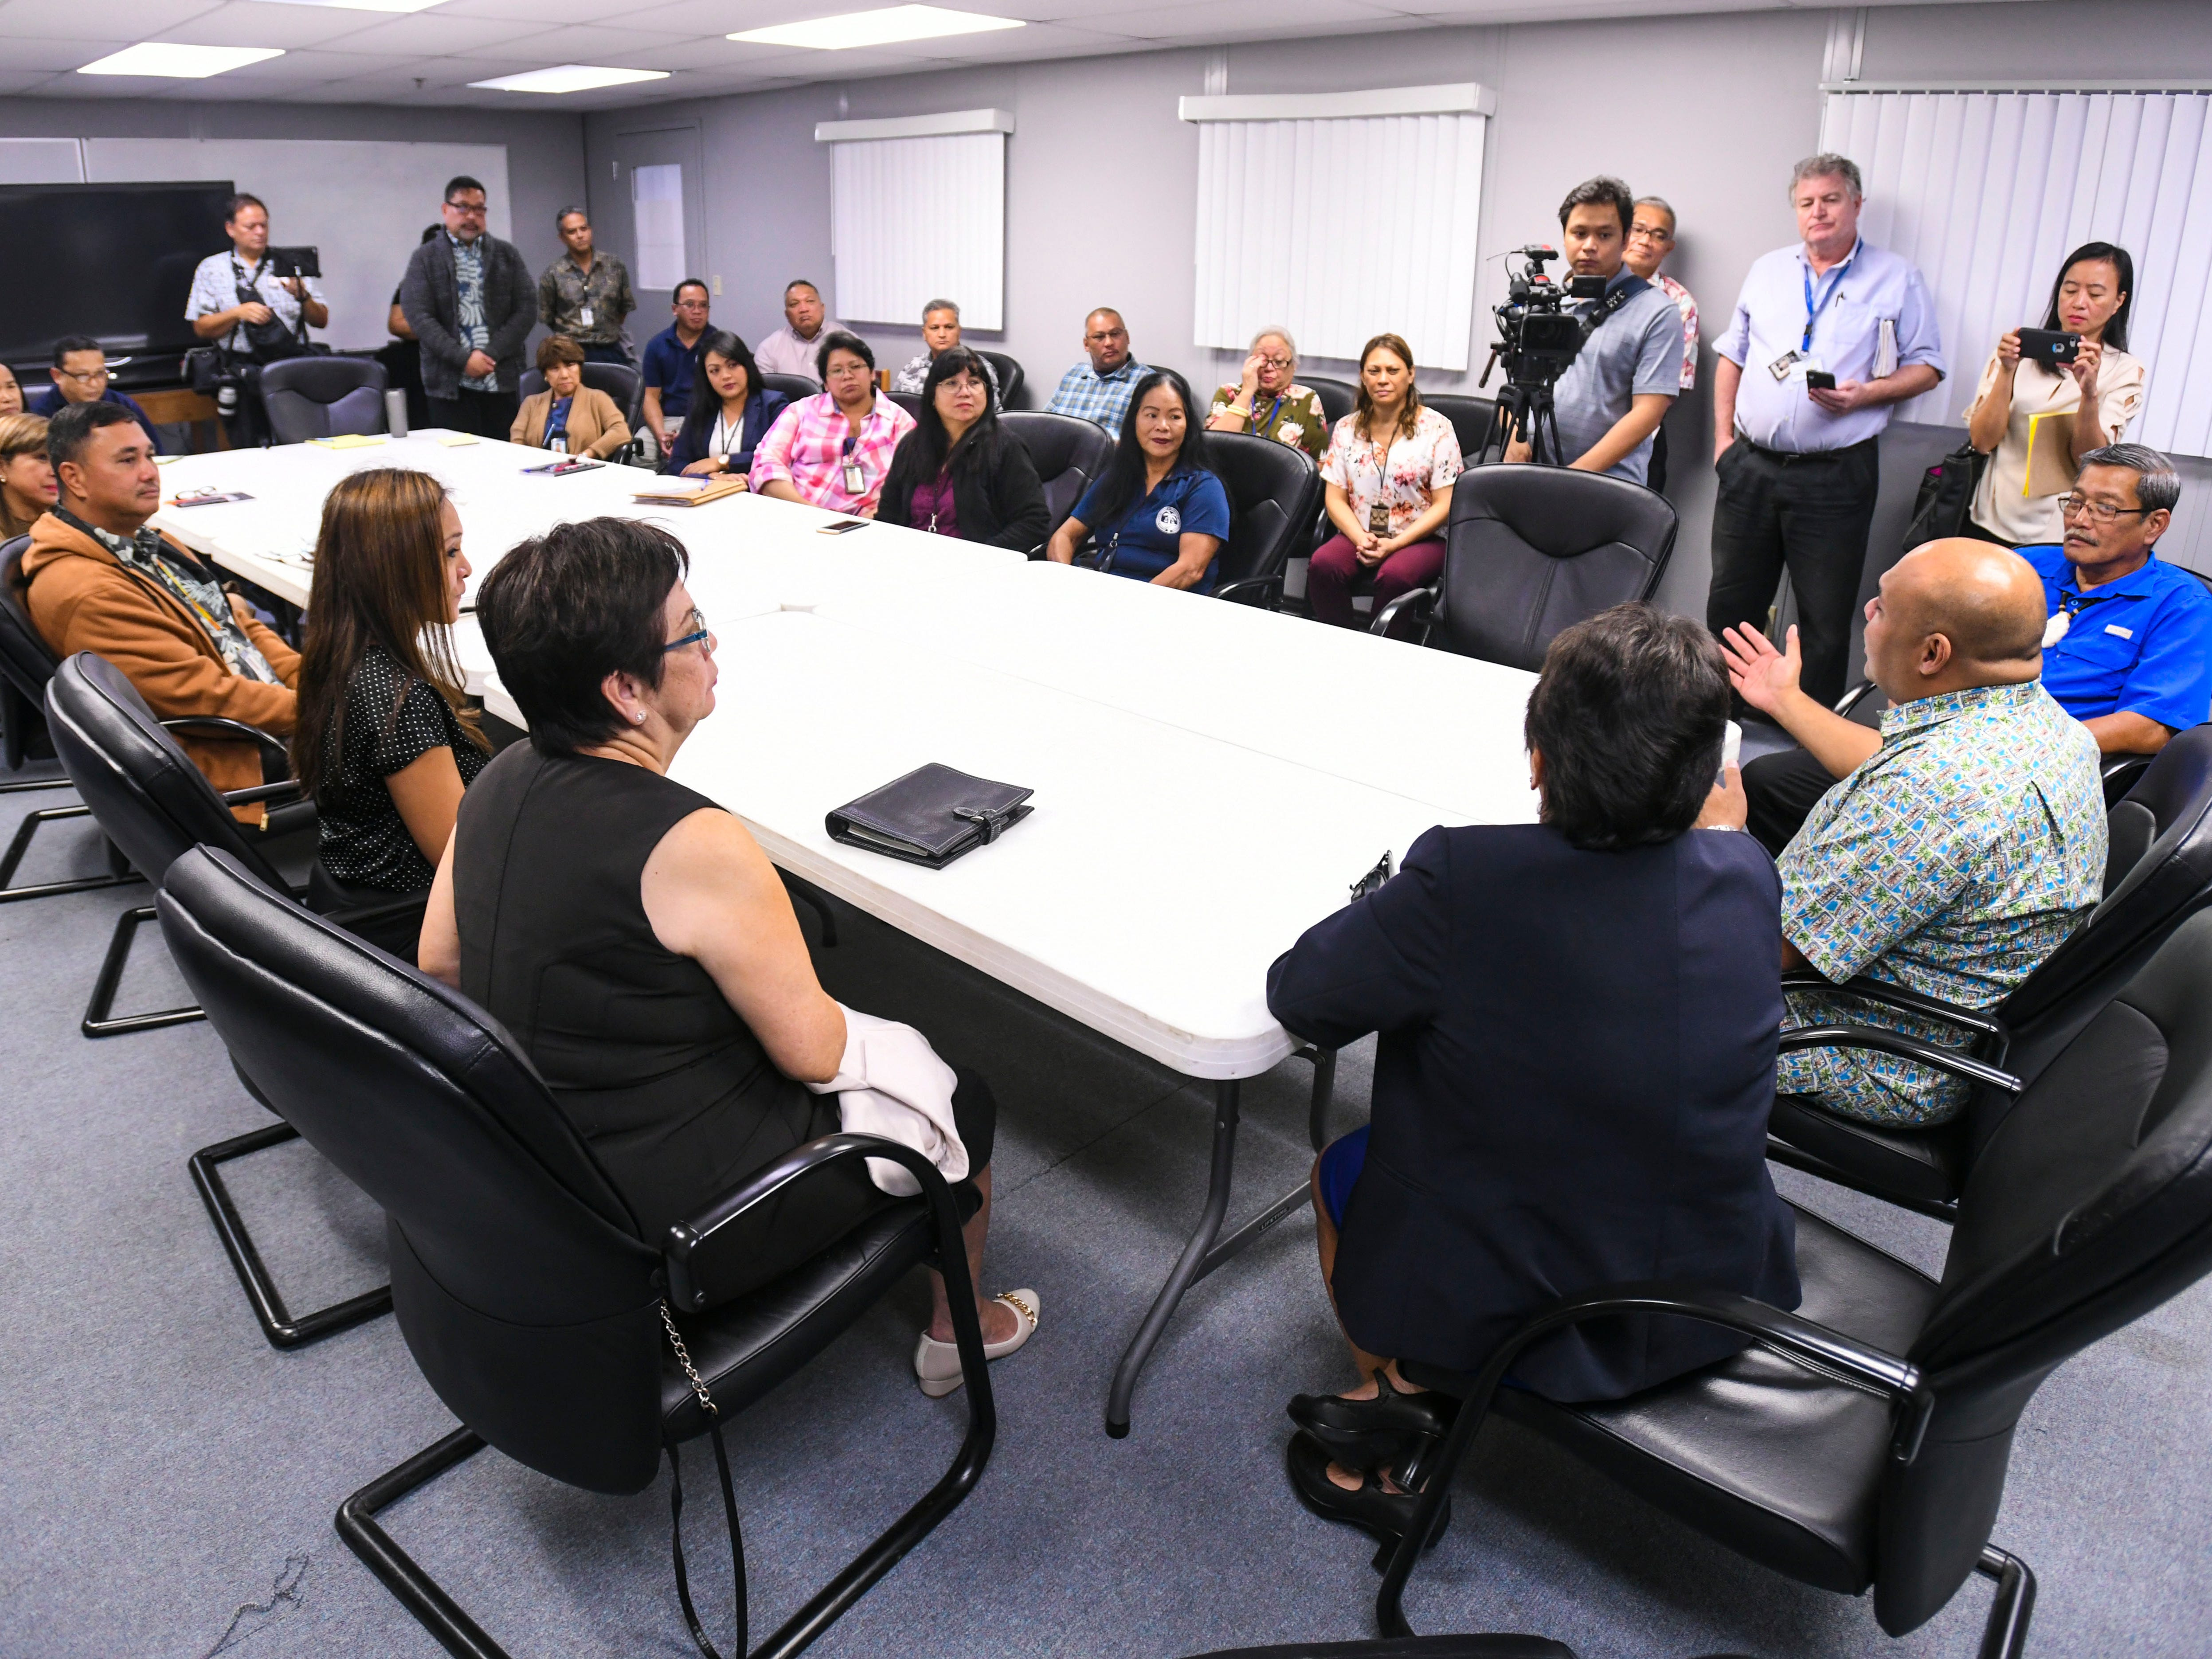 Lt. Gov. Josh Tenorio, right, expresses his appreciation for the work by the Department of Revenue and Taxation employees during a visit to the financial agency, with Gov. Lou Leon Guerrero, in Barrigada Heights on Tuesday, Jan. 8, 2019.